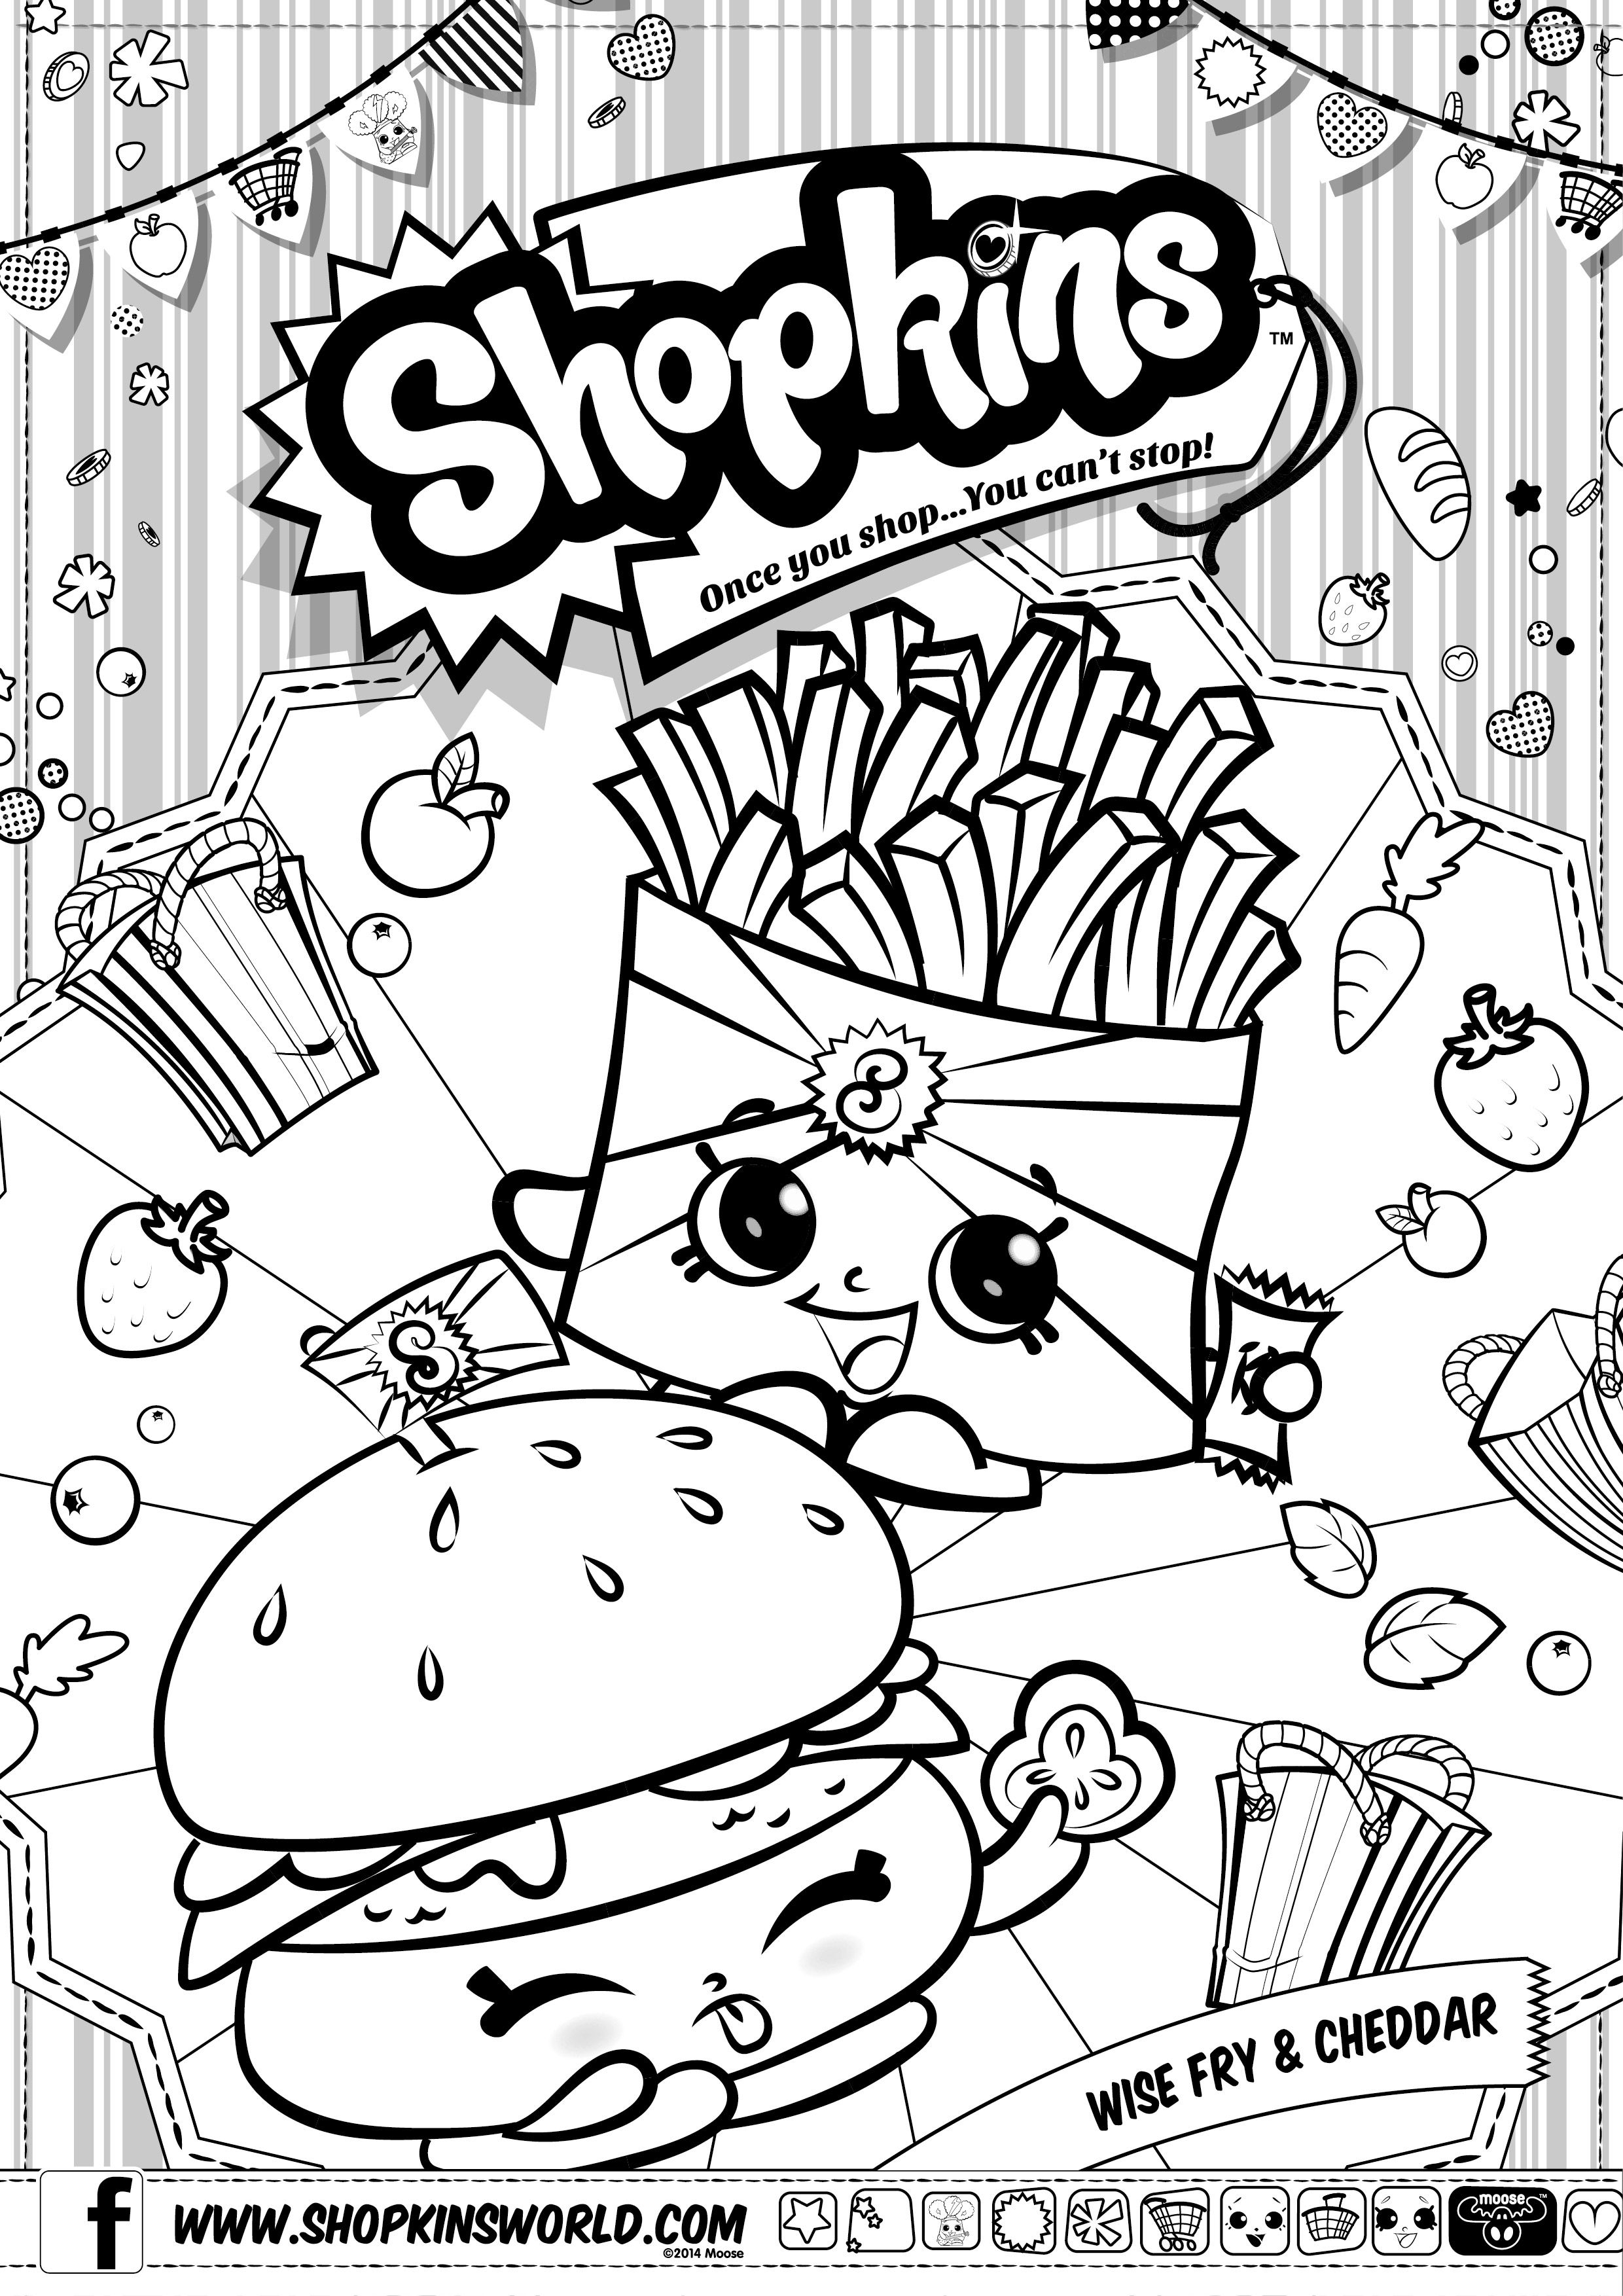 Shopkins Coloring Pages Google Search Things To Wear